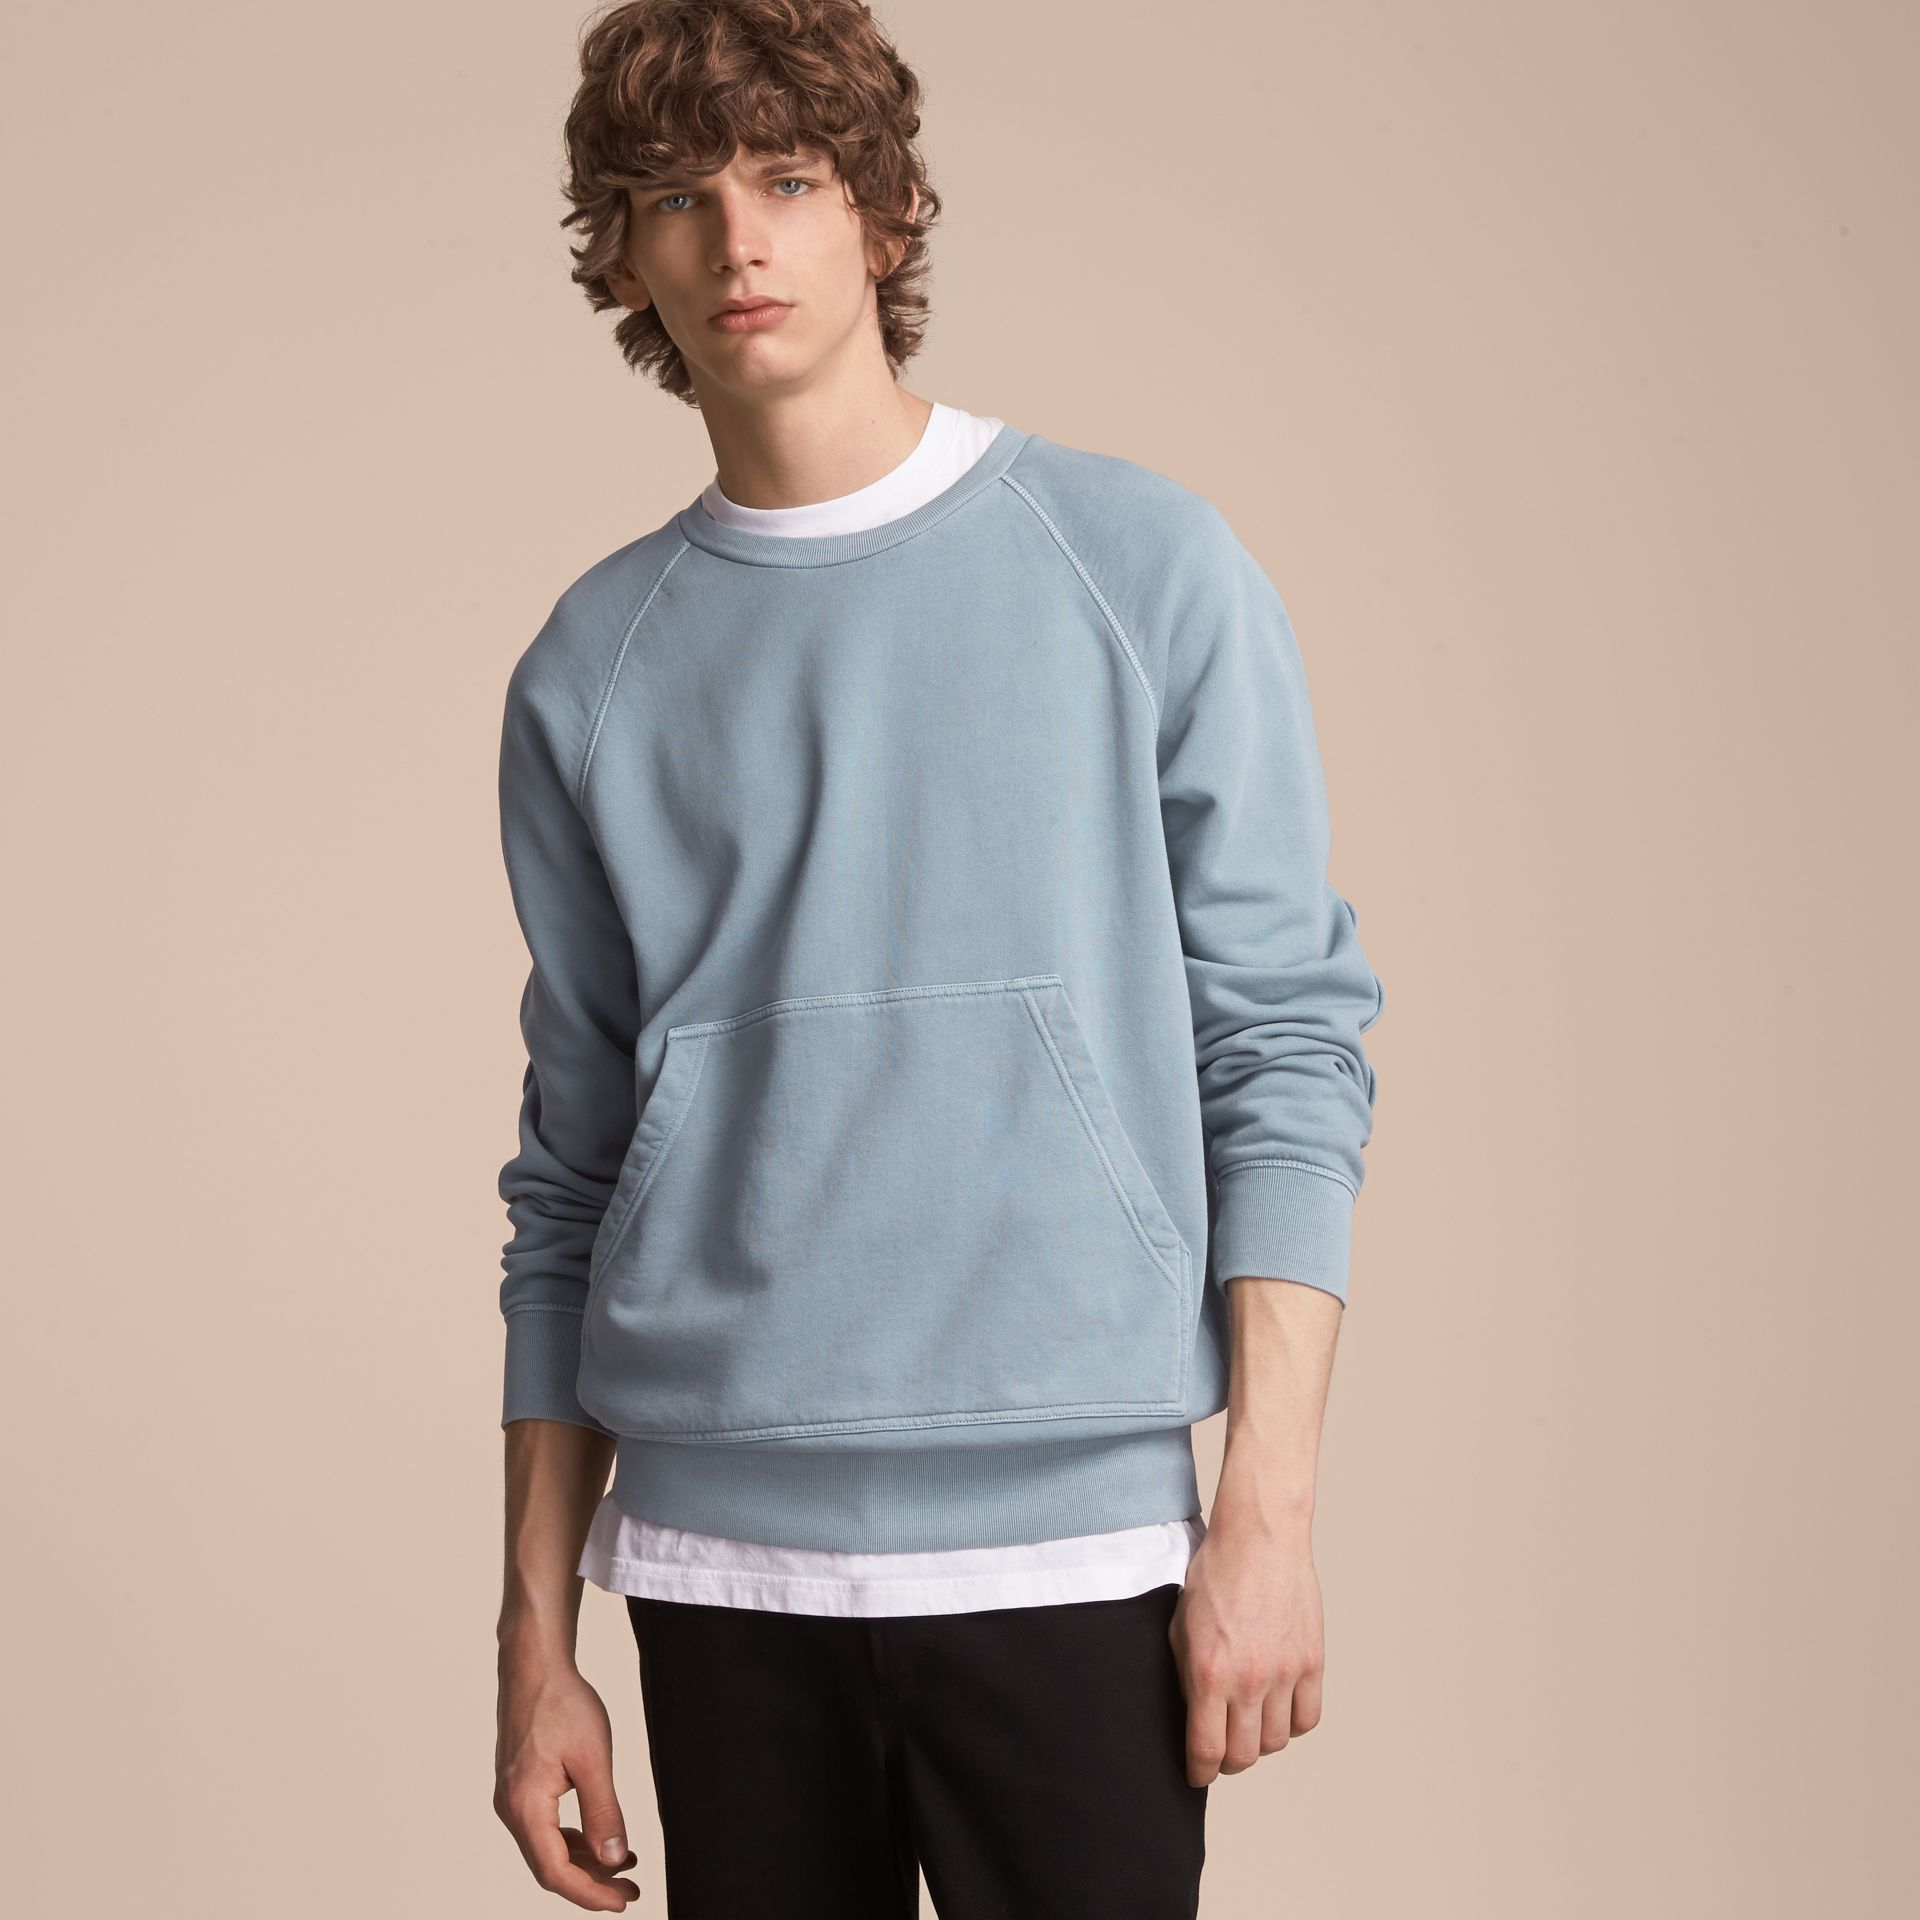 Unisex Pigment-dyed Cotton Oversize Sweatshirt in Dusty Blue - gallery image 6